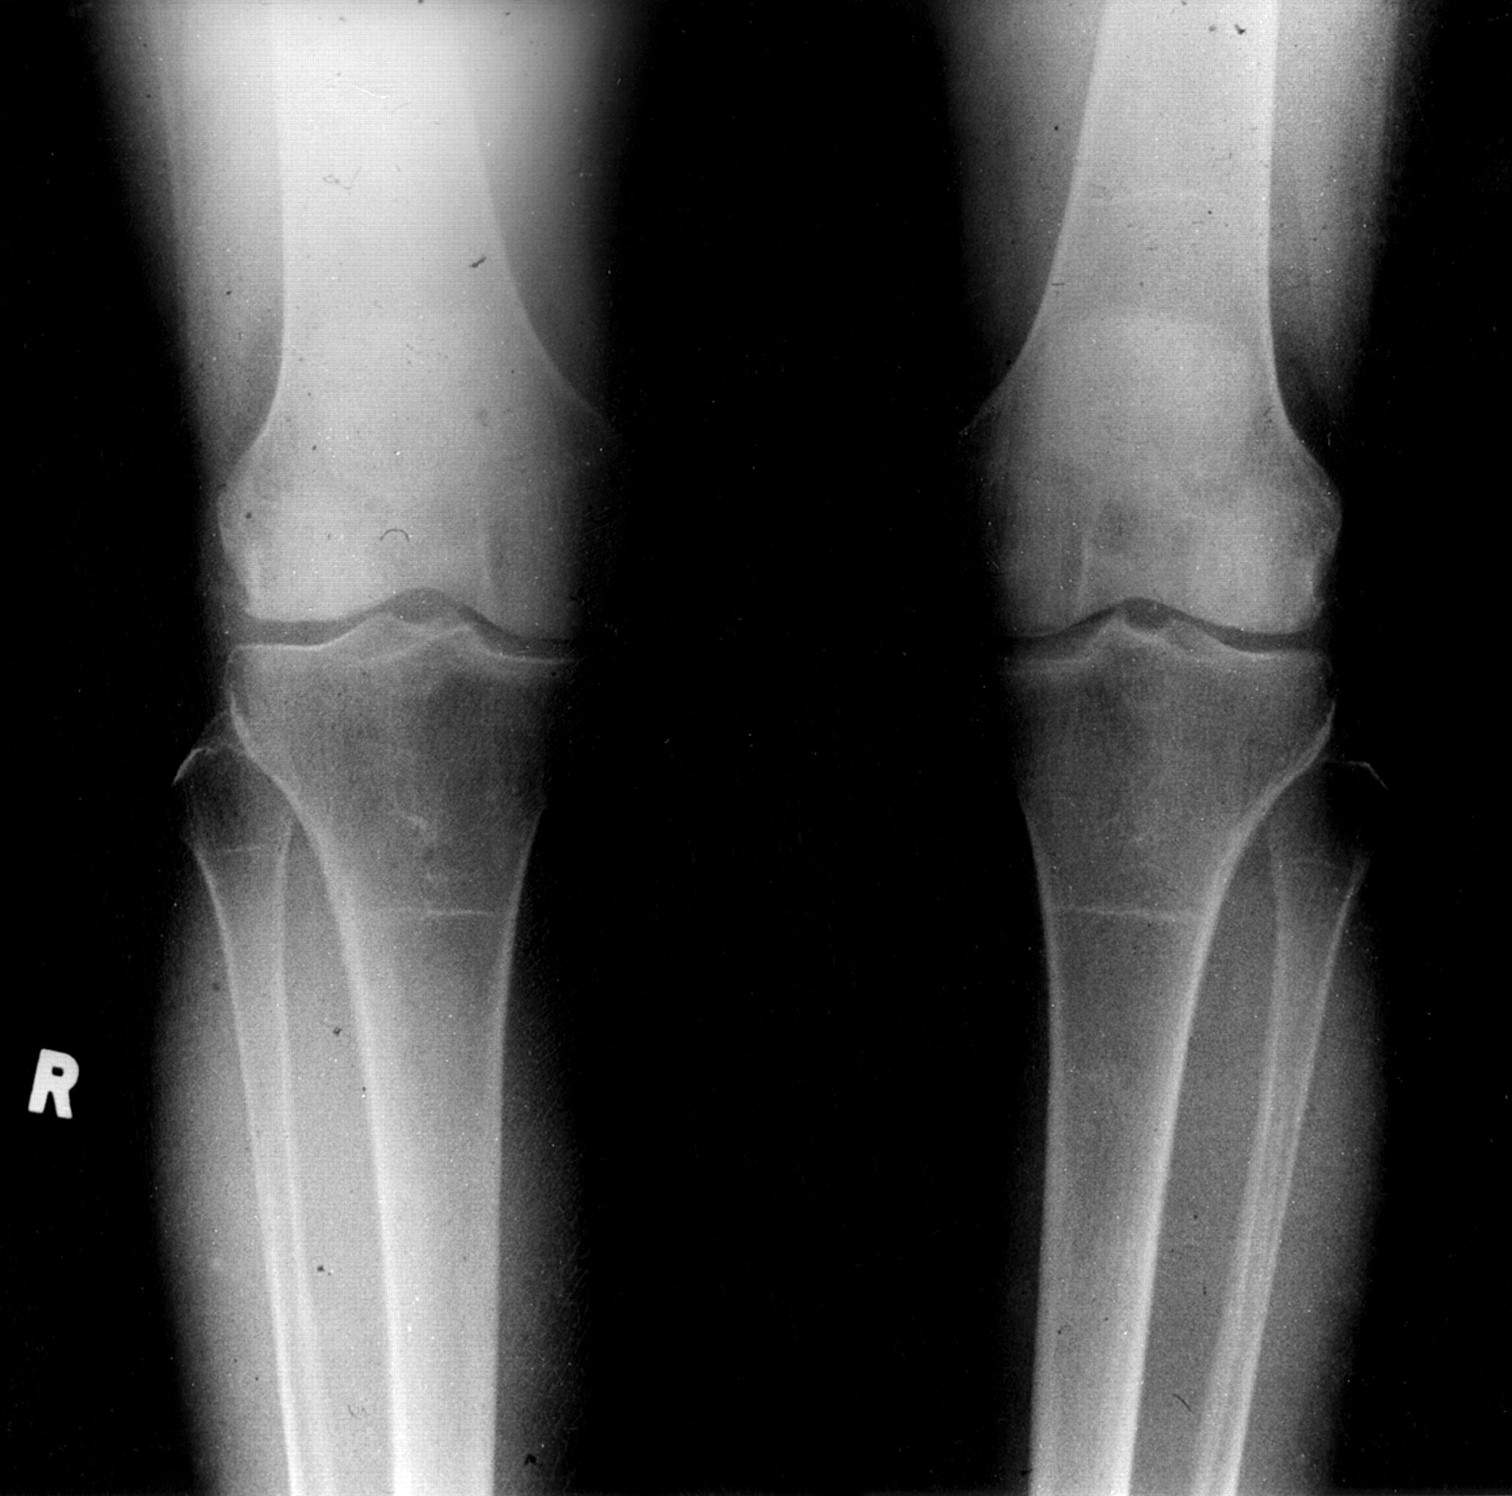 Debilitating Knee Pain In A Patient With Normal Radiographs